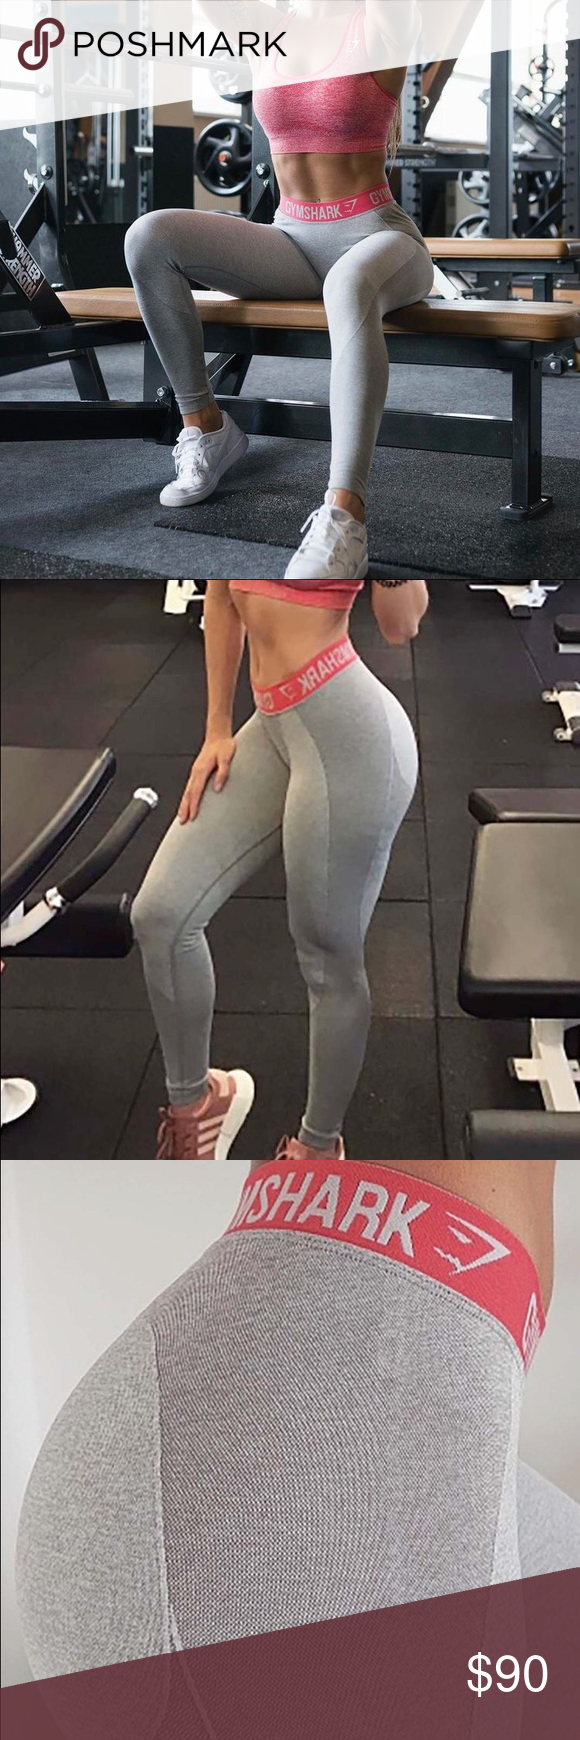 877e42eb0e6b4 Gymshark Flex Leggings Light Grey Marl/Sherbet Pink in a size XS sold out  online. Just ordered so will be arriving in a week or so!